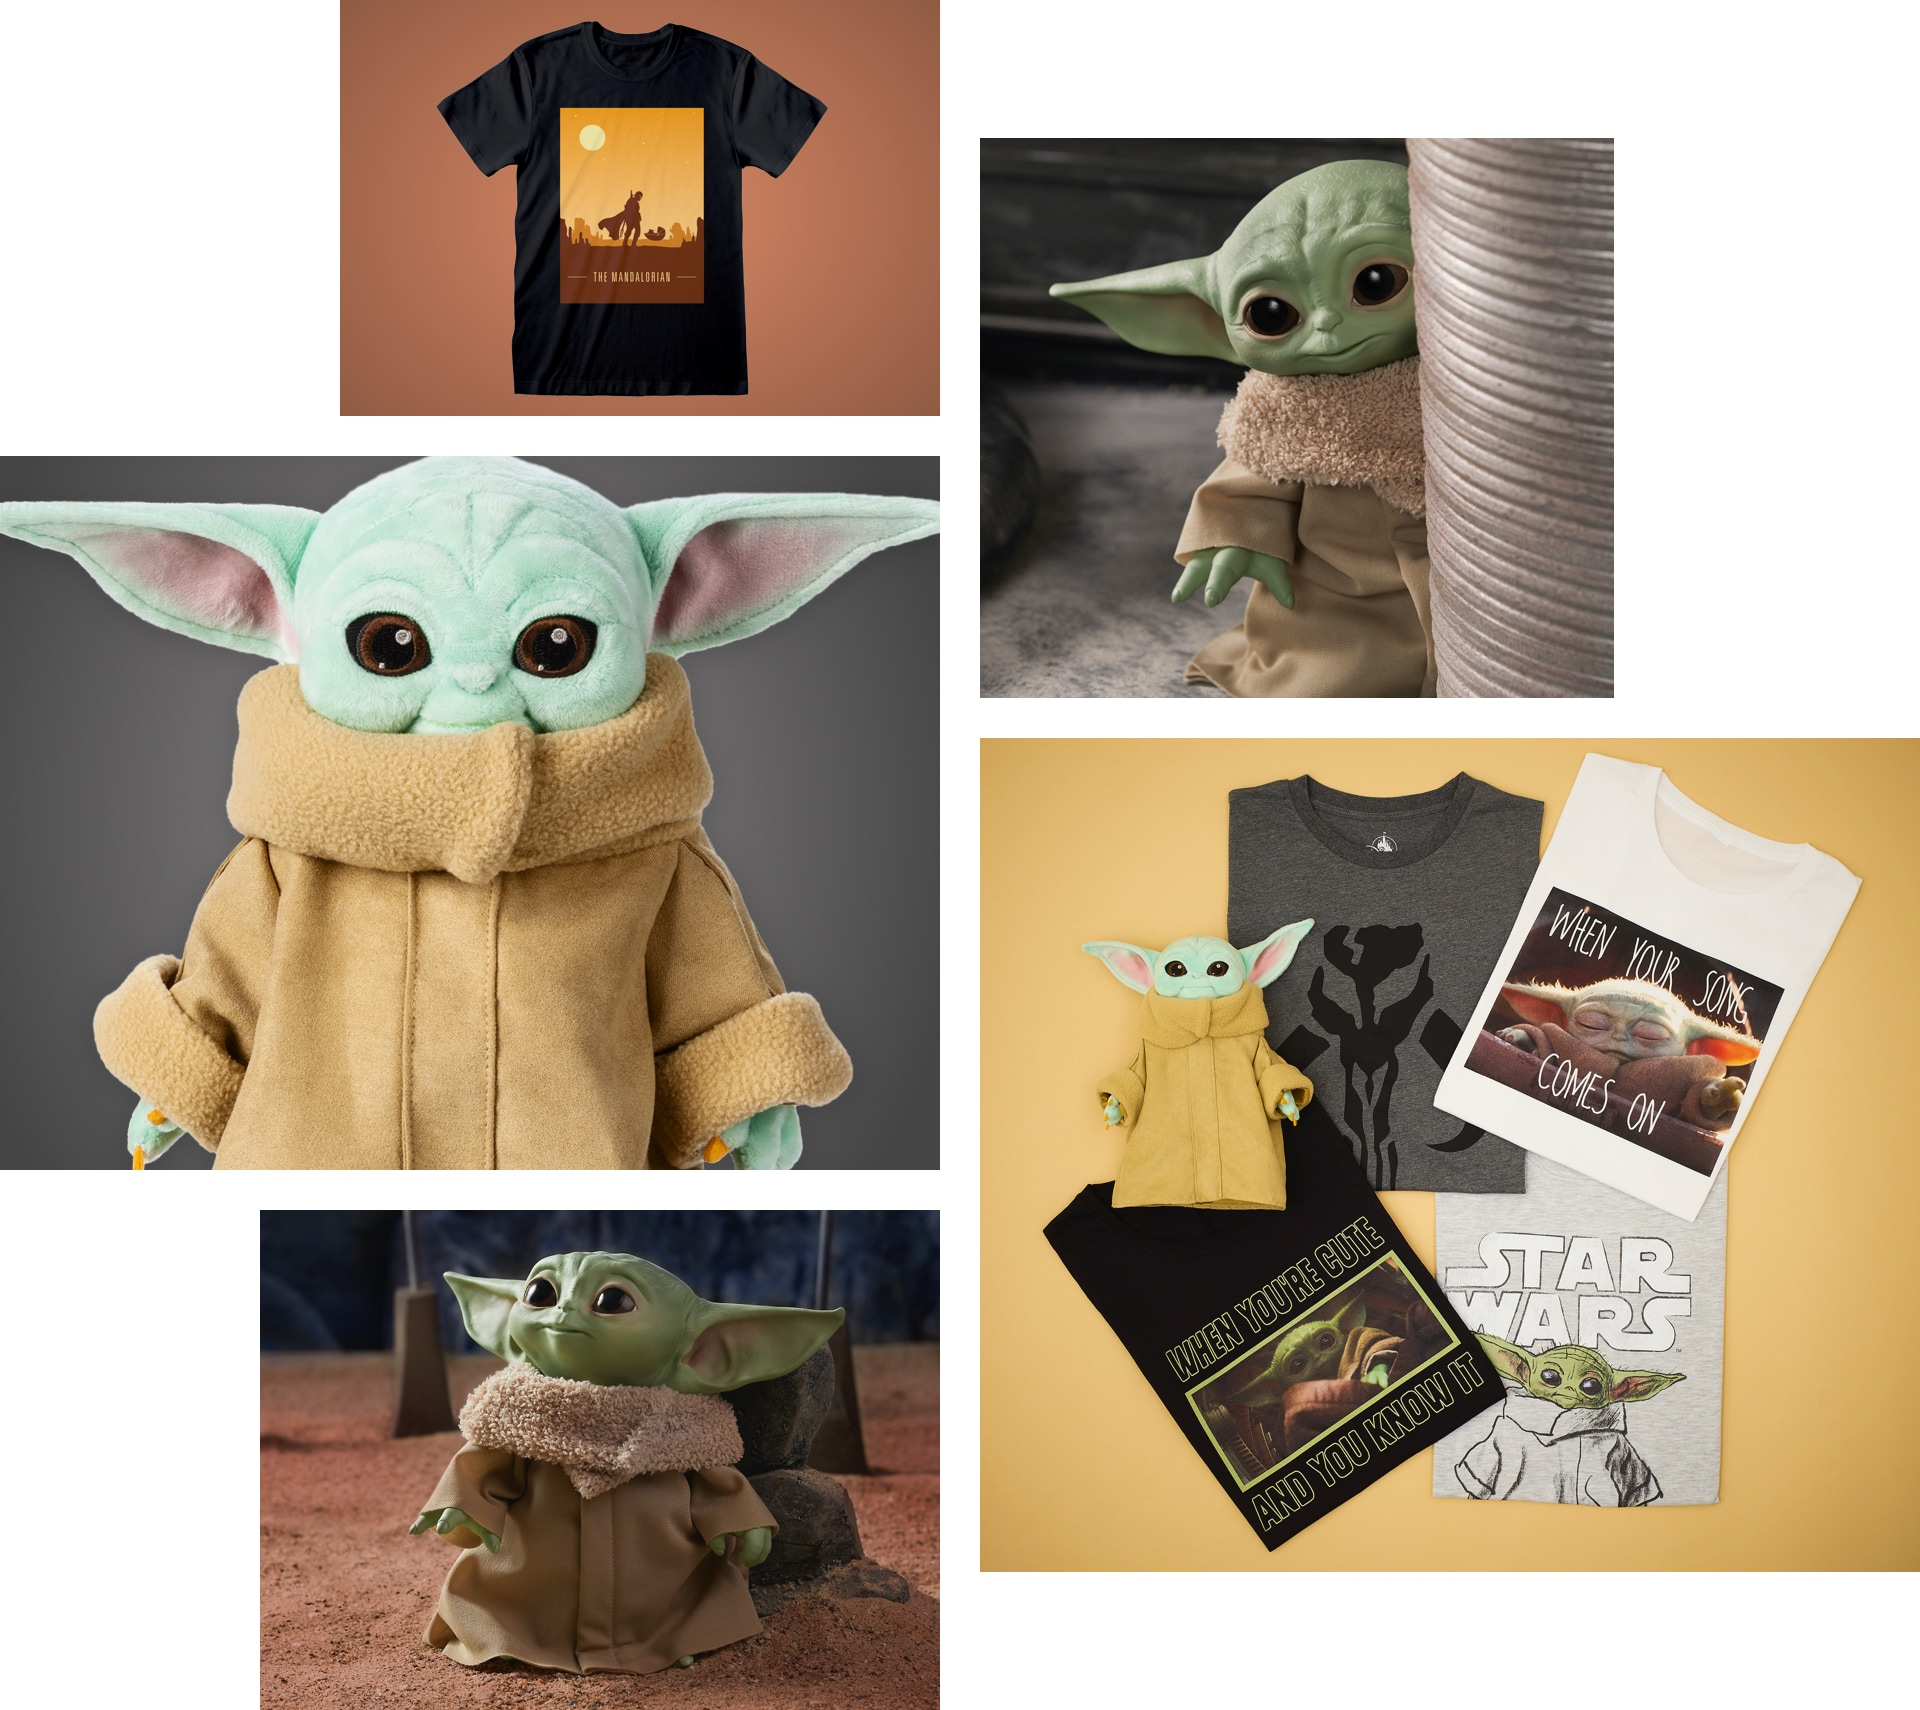 A selection of products of the Child, a character from Star Wars The Mandalorian.